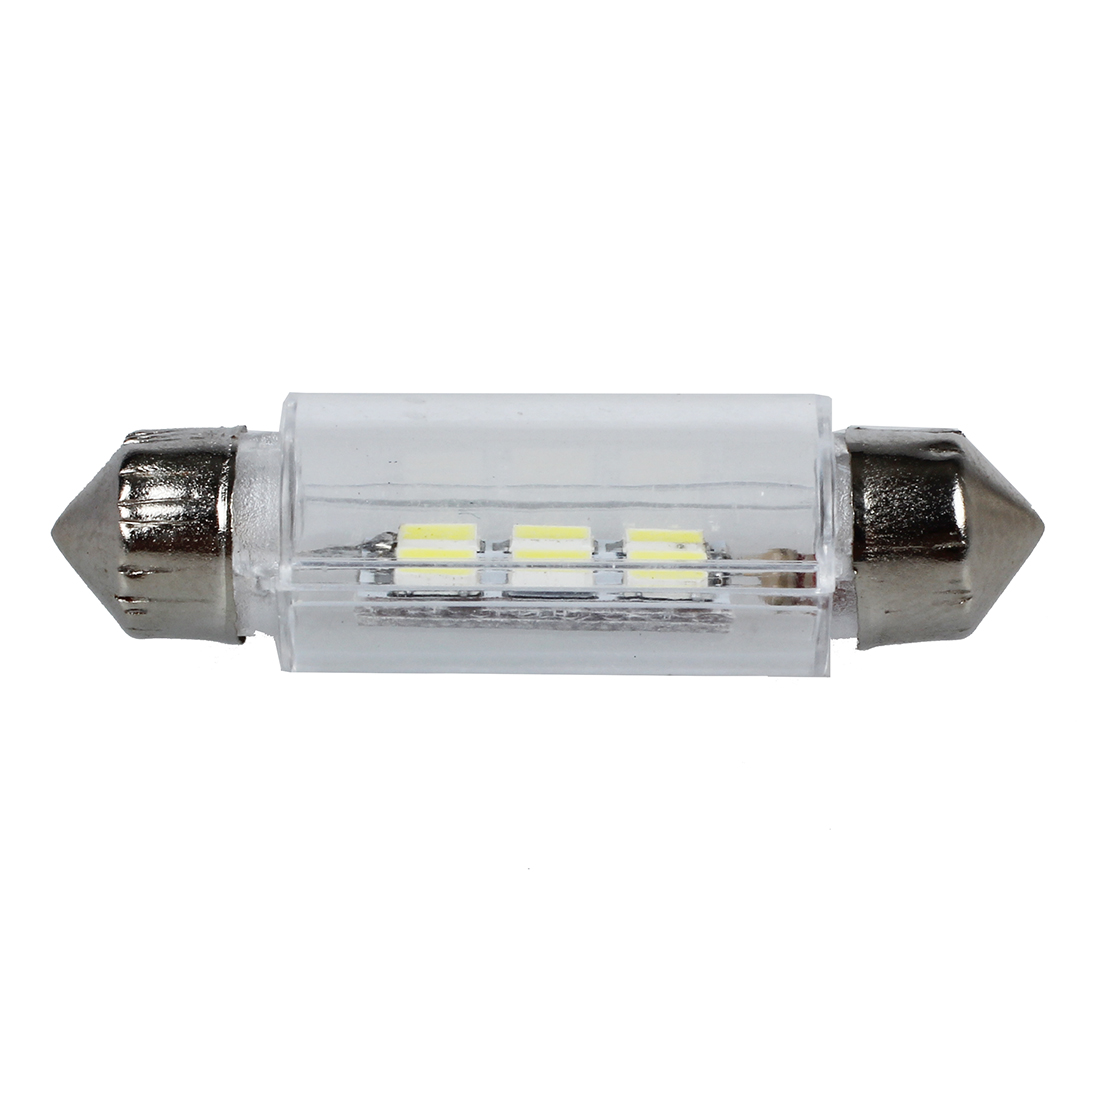 New Practical 38mm White 6 Smd Led Car Interior Dome Light Lamp Bulb Power To The And Comes On Dc 12v Low Consumption High Brightness Easy Install Compatible With 40mm 44mm 211 2